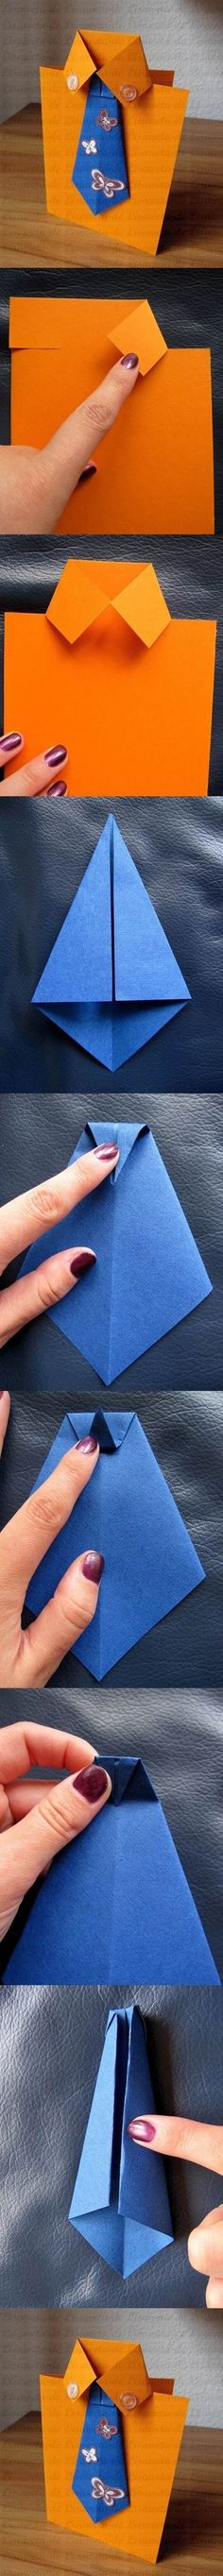 How to make a shirt and tie greeting card